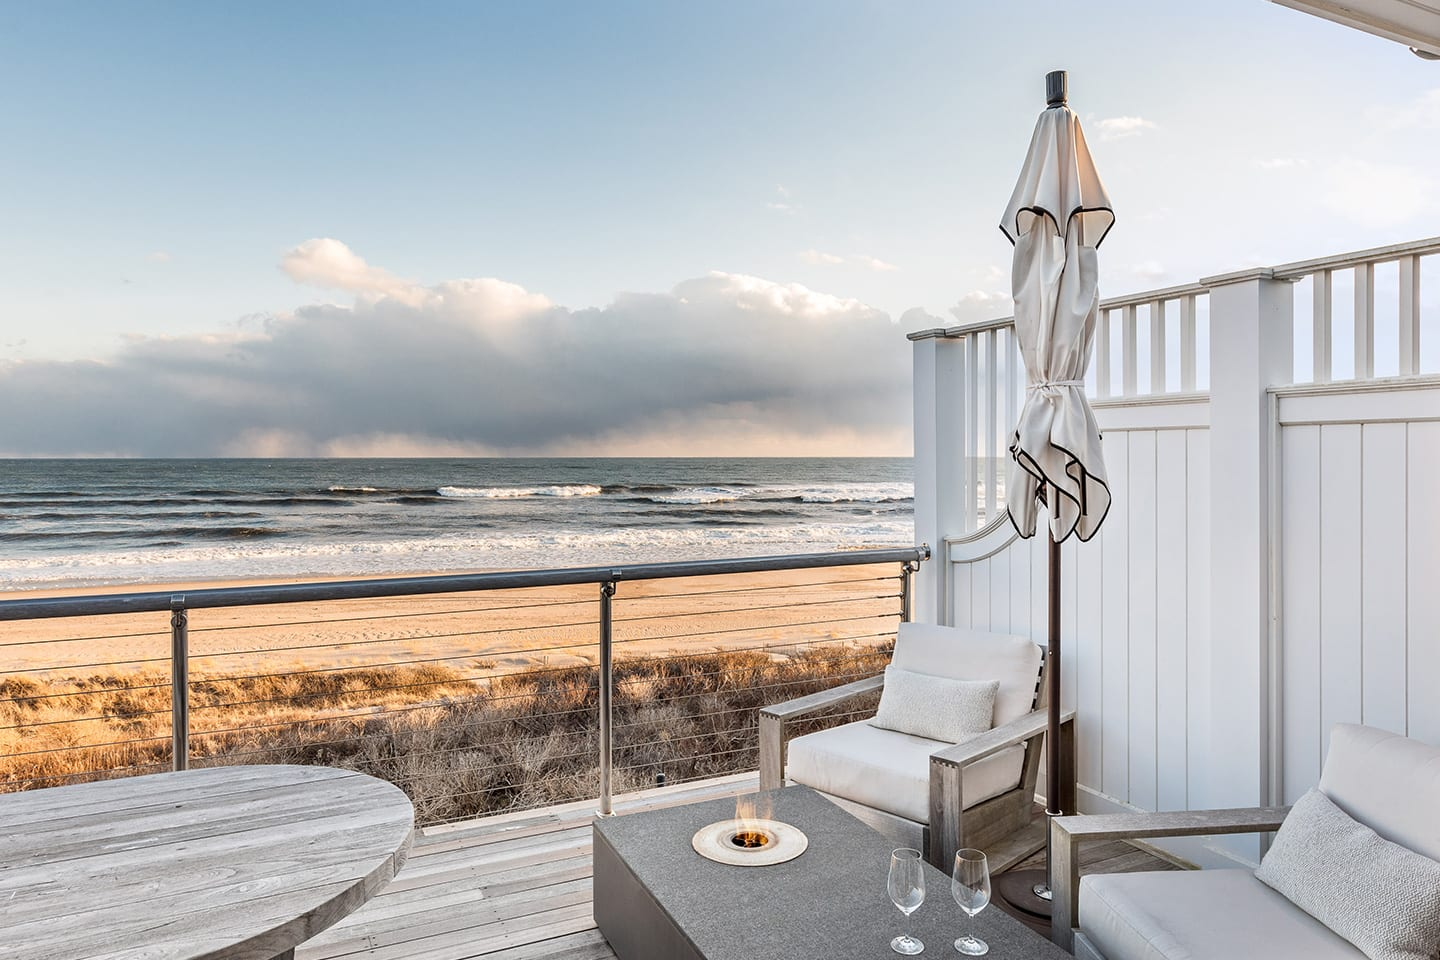 Salt Sea 5 deck with fire pit and views of the ocean